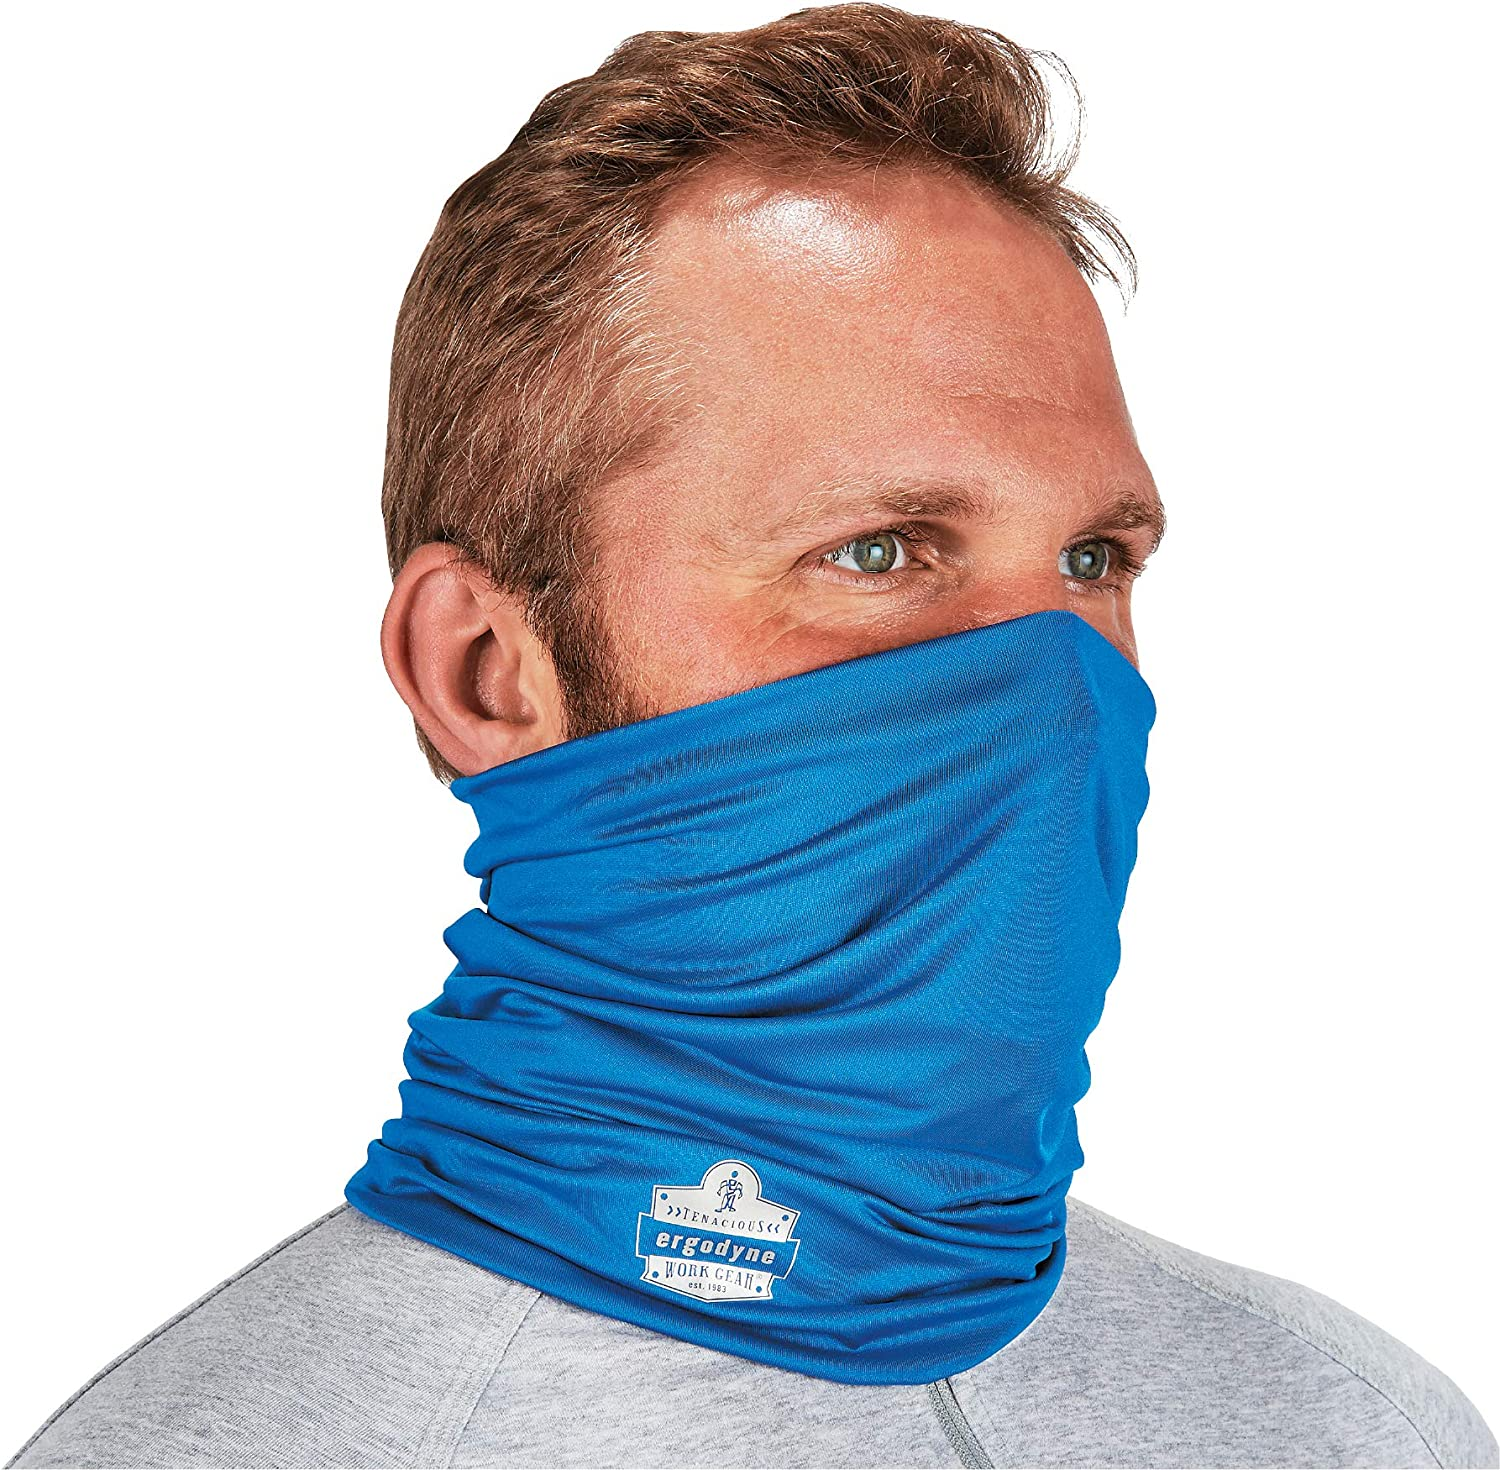 Ergodyne Chill-Its 6487 Cooling Neck Ways Boston Mall Multiple Gaiter to We Max 76% OFF